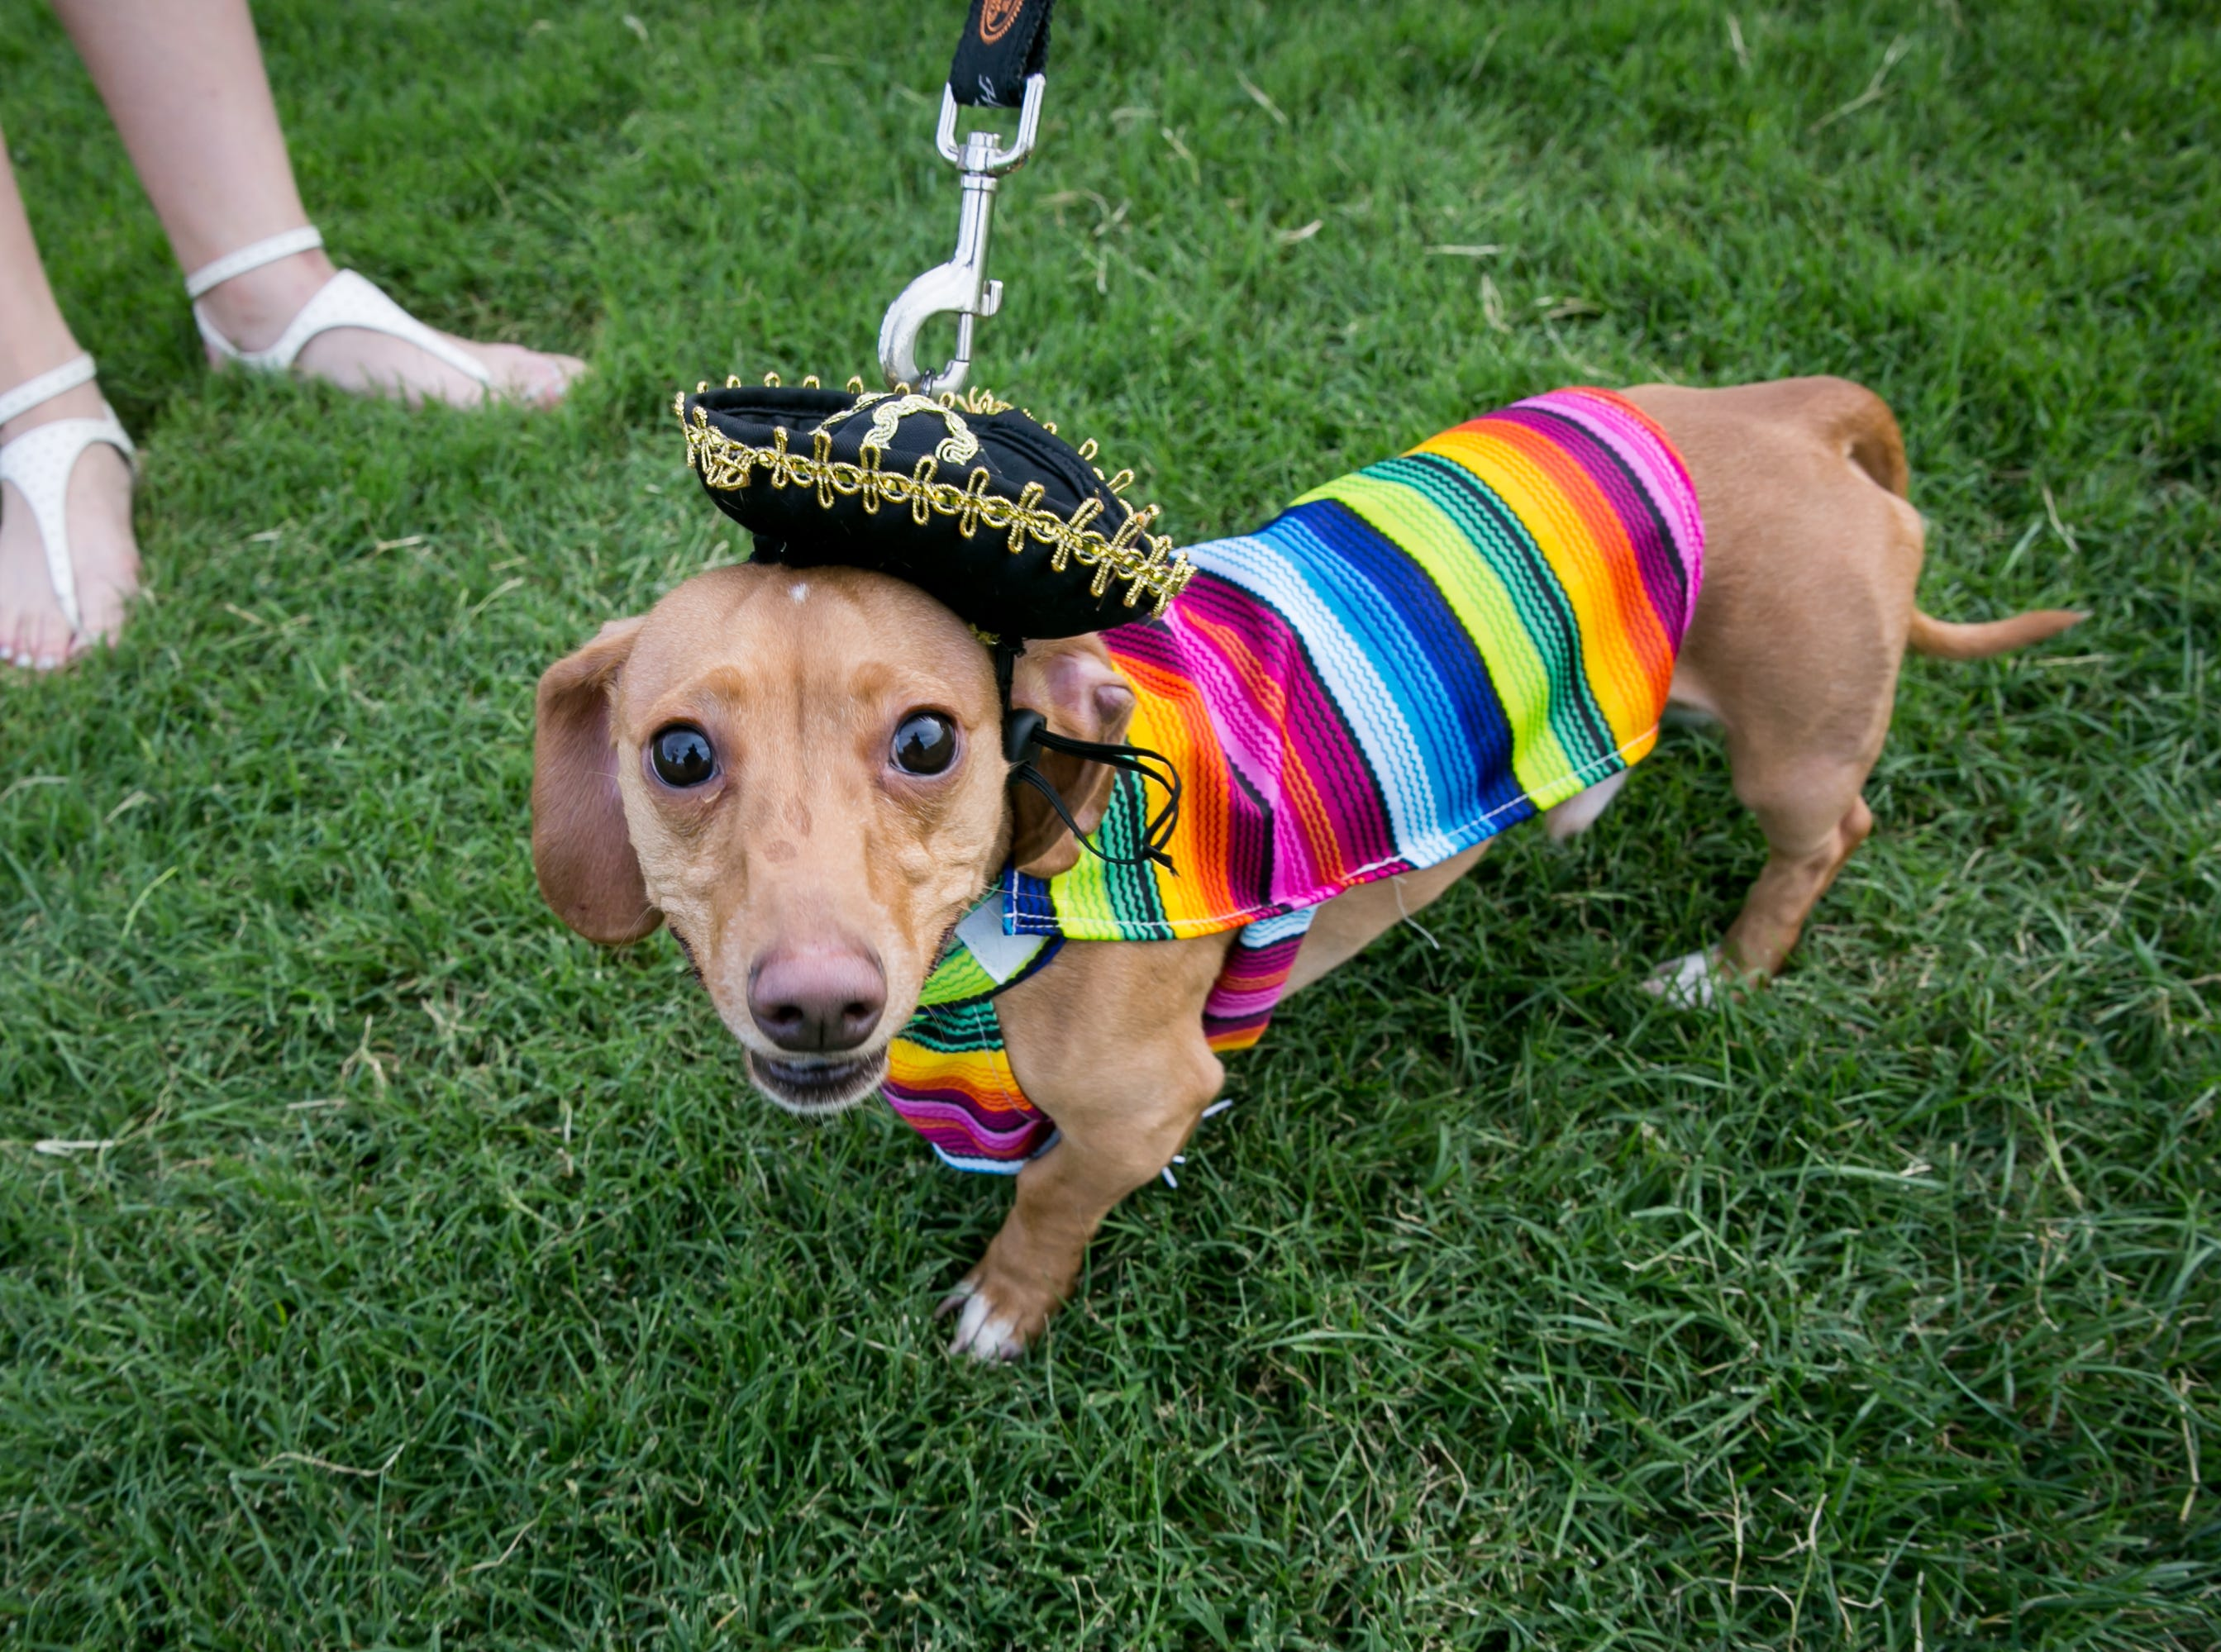 This little guy enjoyed a fiesta and a siesta during Howl-o-Ween at Hance Park on Sunday, October 28, 2018.